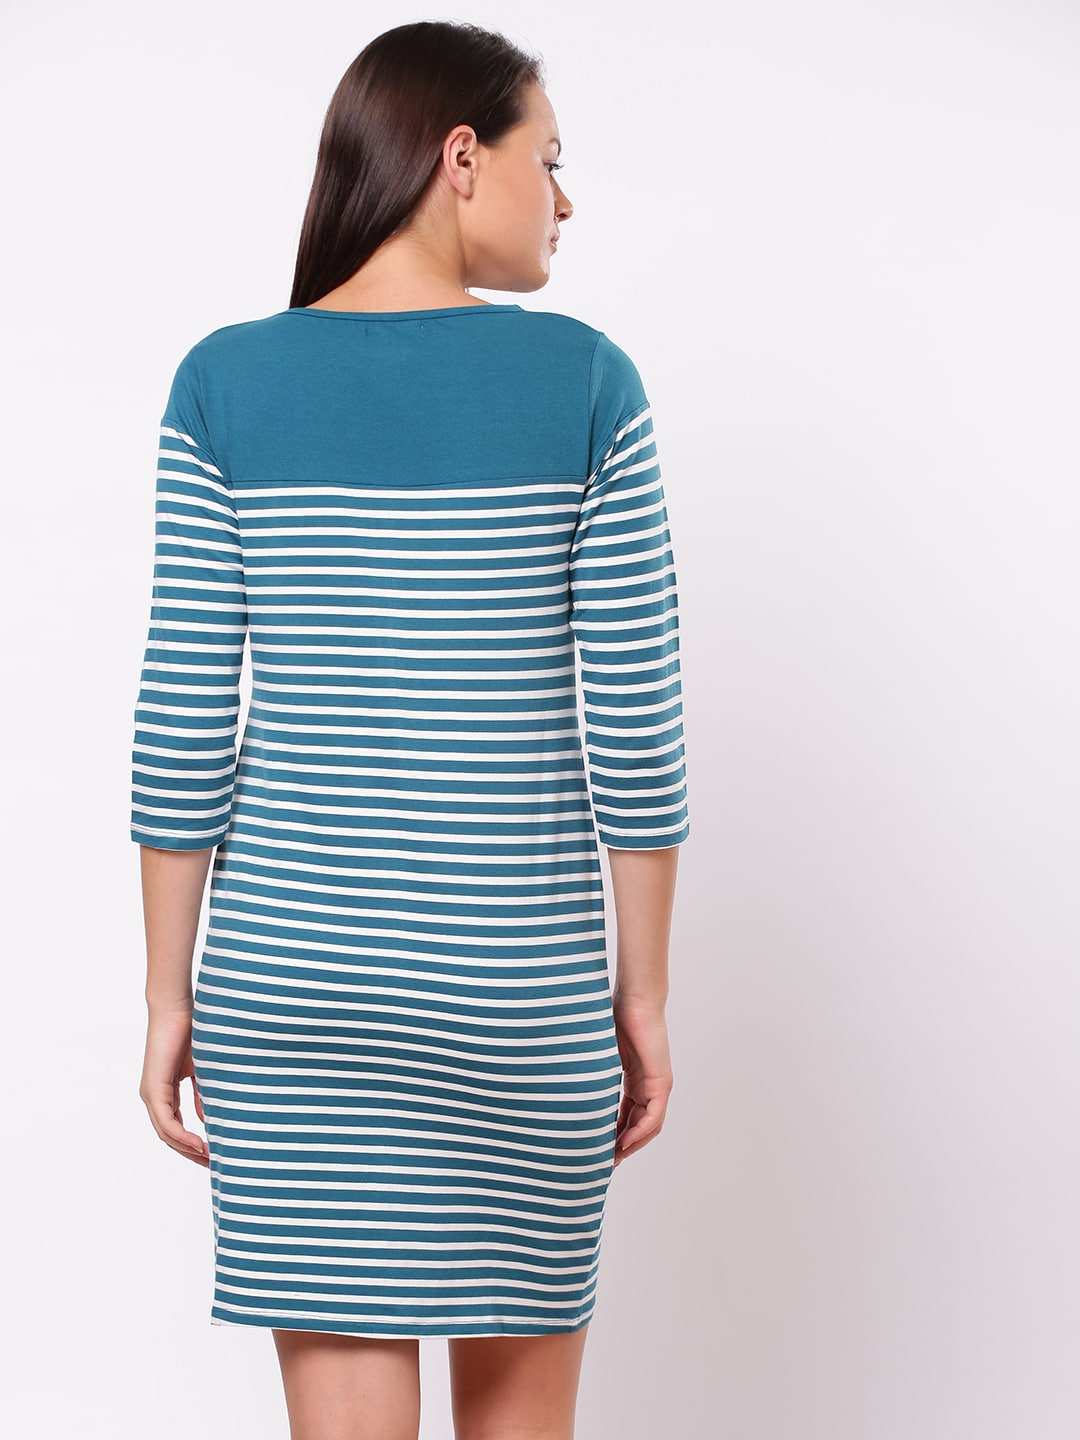 ether Women Teal Green & White Striped T-shirt Dress